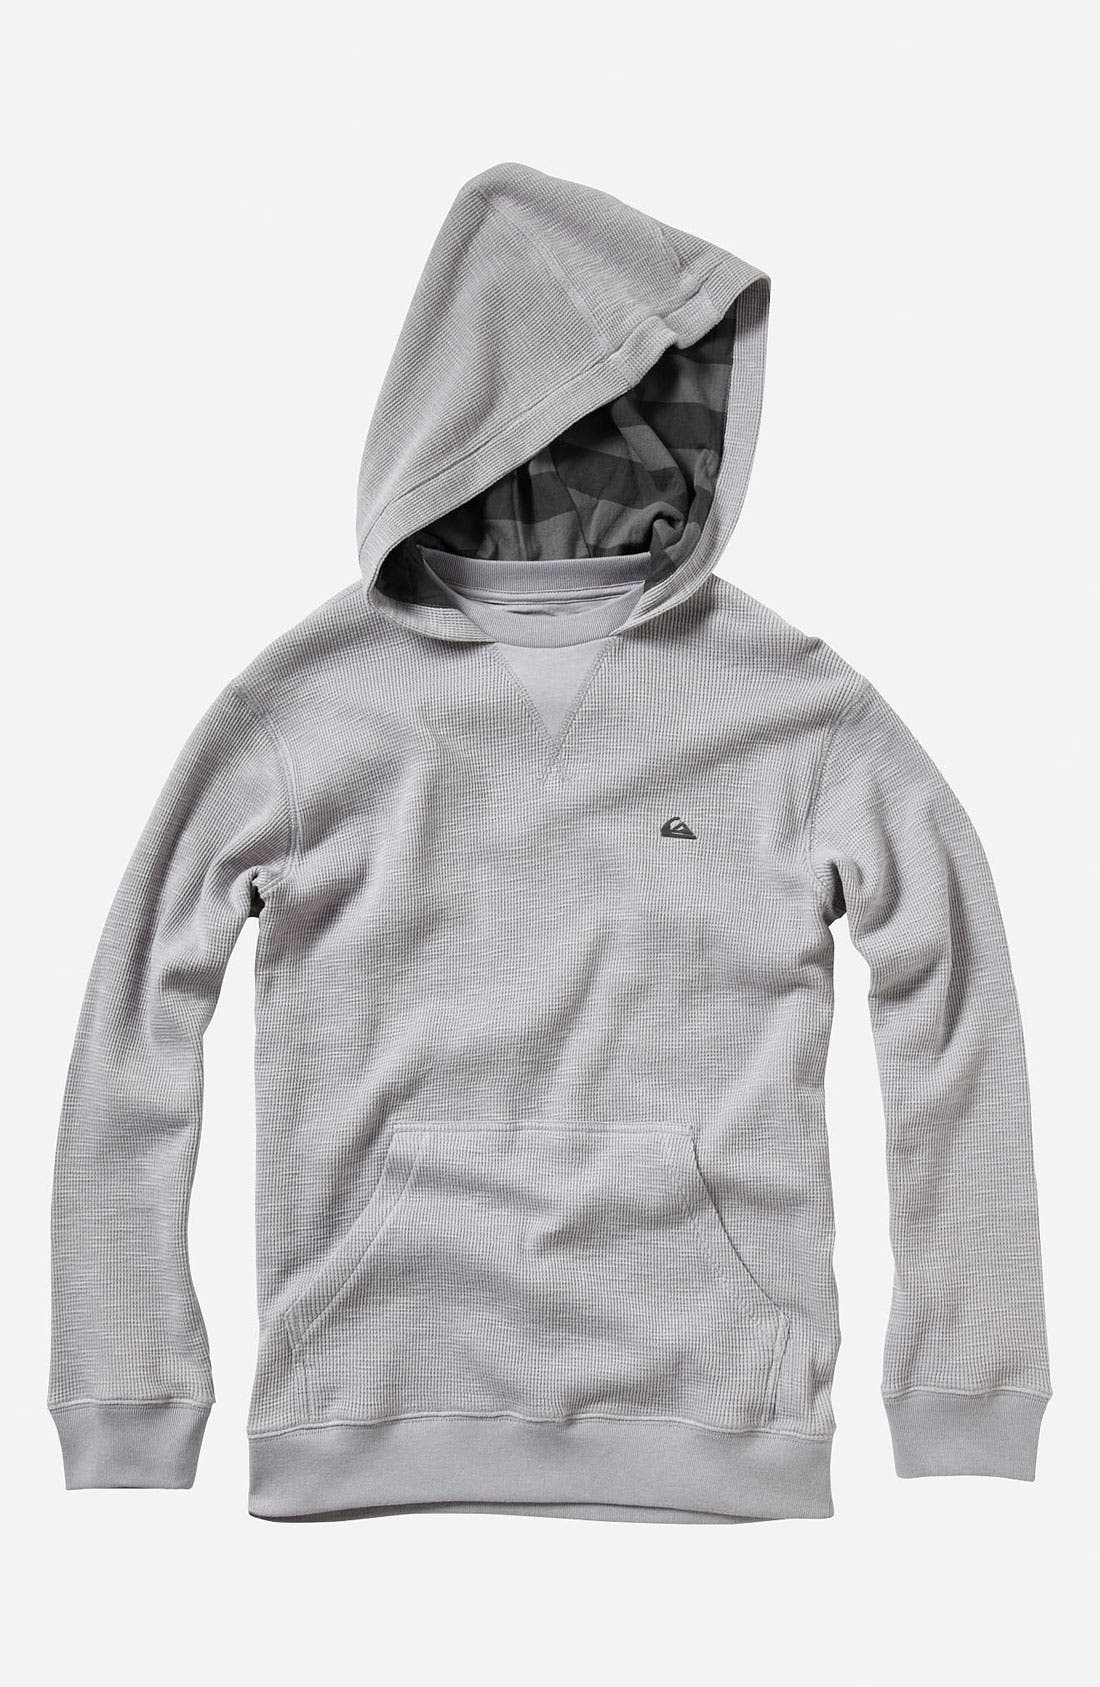 Main Image - Quiksilver 'Calder' Waffle Knit Hoodie (Big Boys)